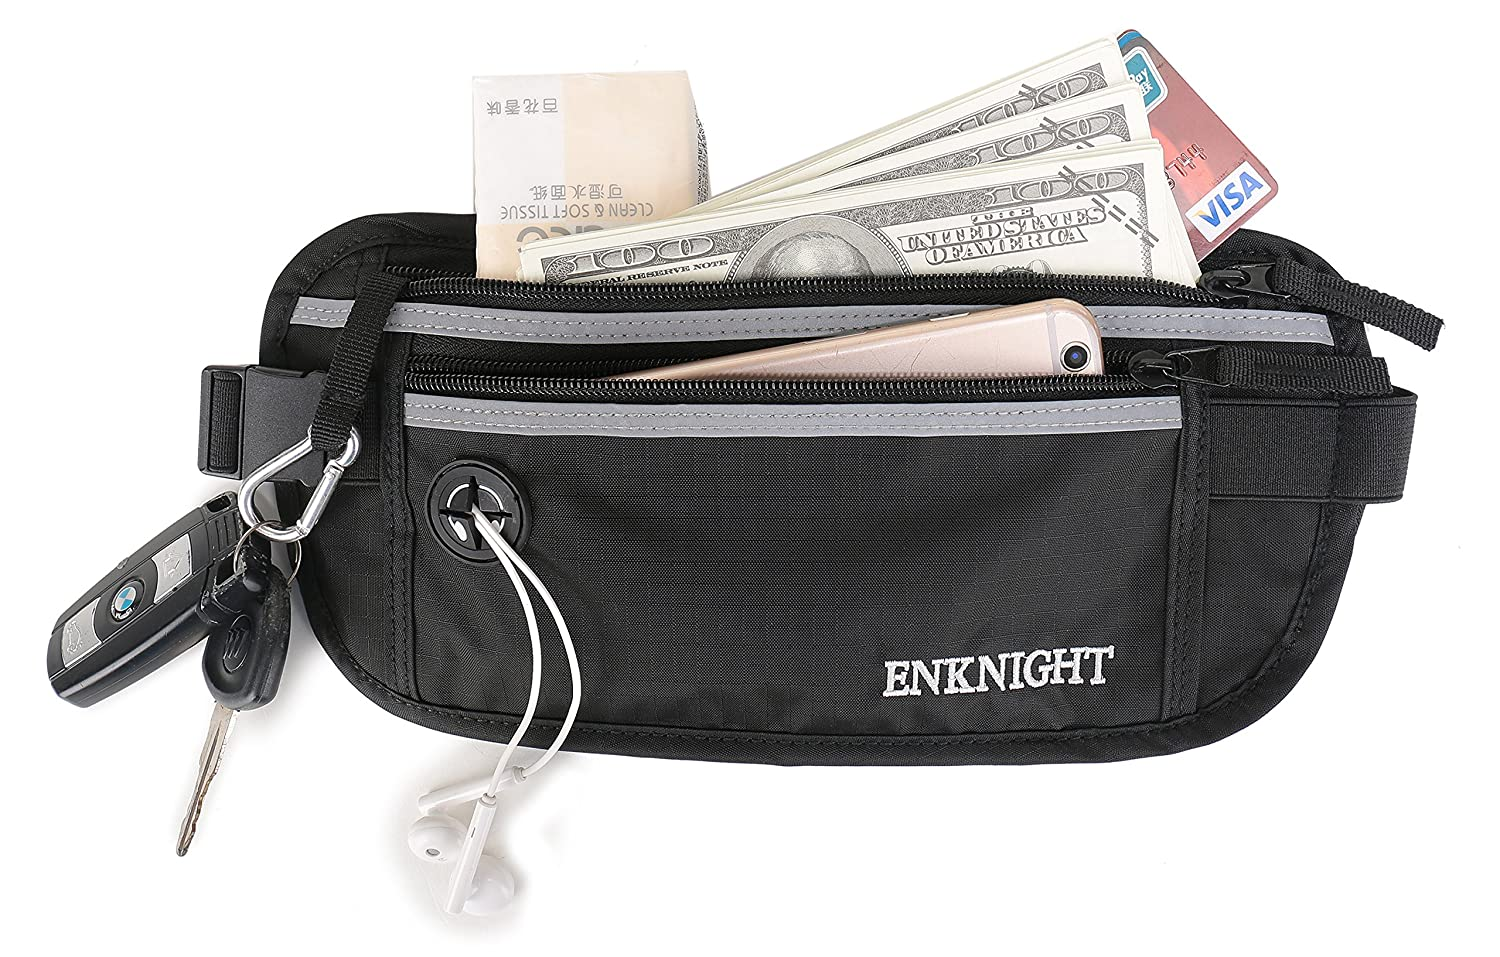 ENKNIGHT Big RFID Waist Pack for Travel Running Fanny Pack for Men & Women Money Belt Phone Pocket Hidden Fanny Belt For Keys Cashes ID Card Ticket Green